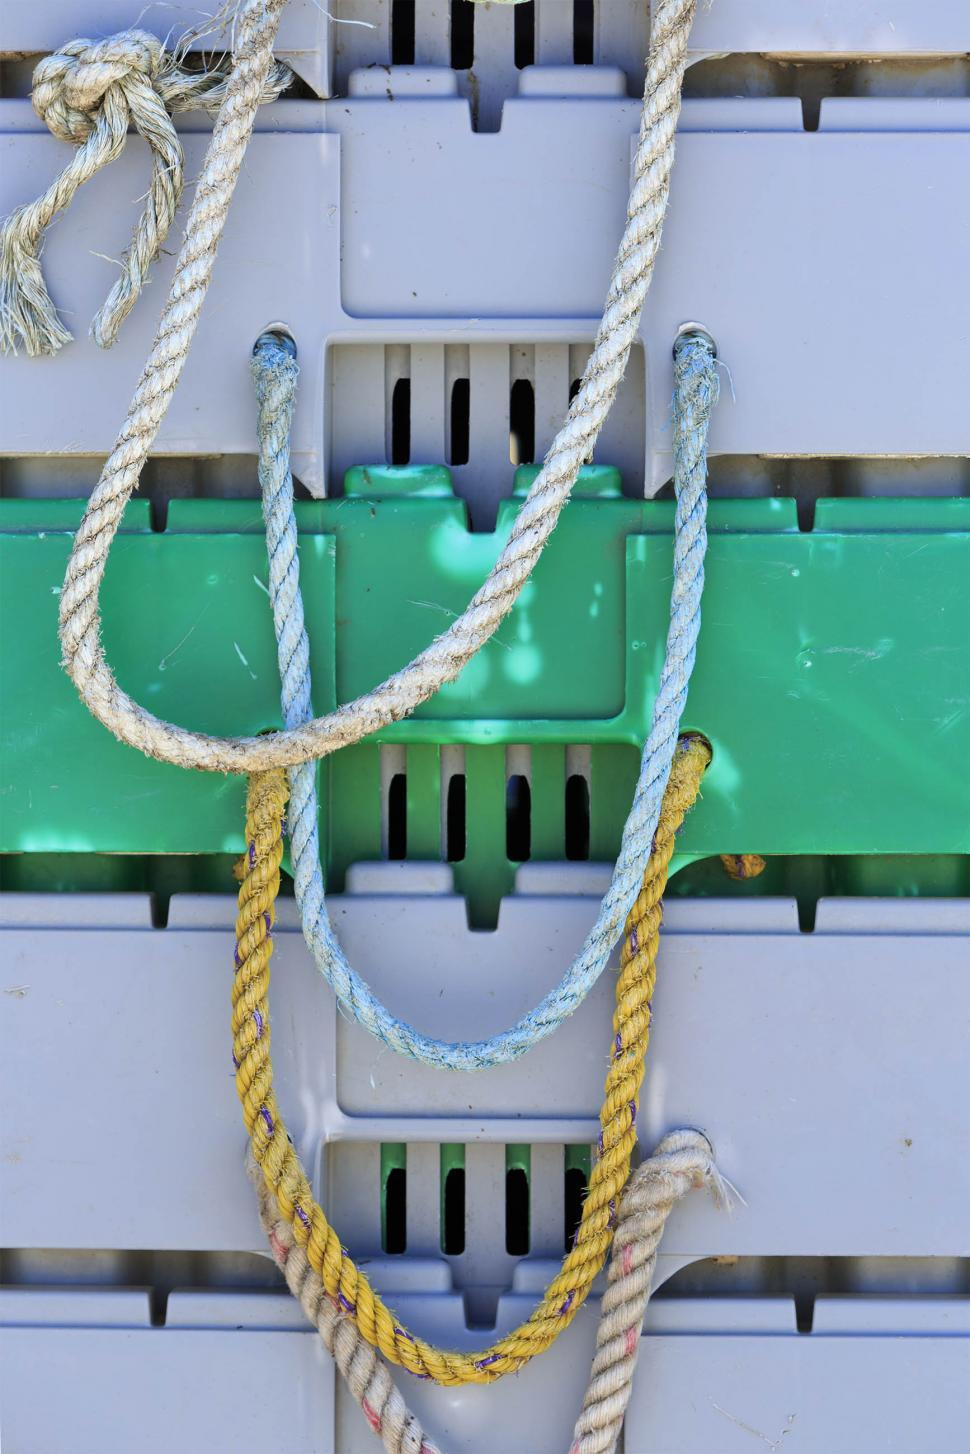 Download Free Stock HD Photo of Rope on lobster storage pens Online